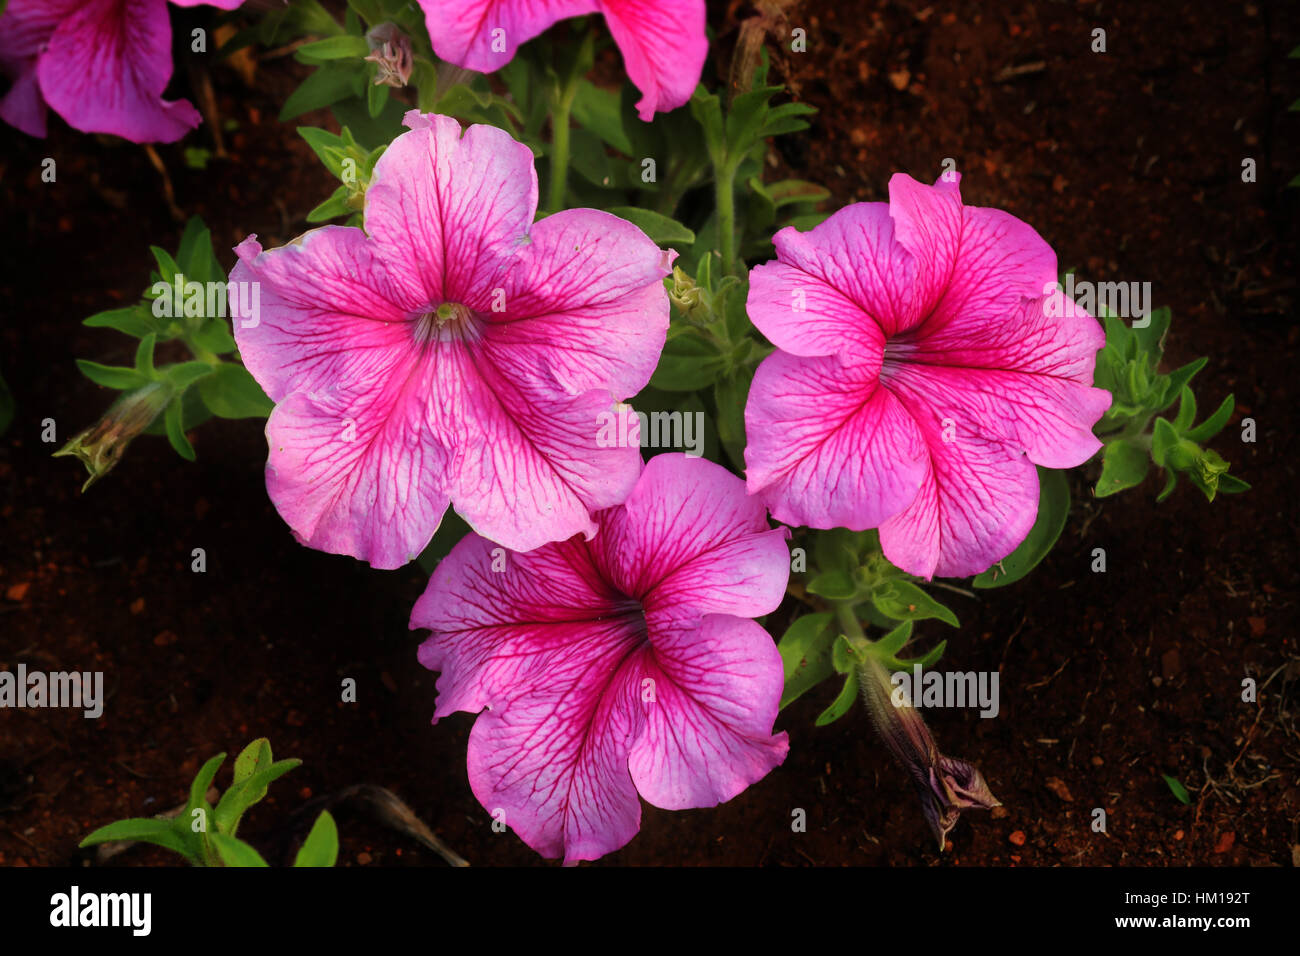 Baby pink flower wallpaper stock photos baby pink flower wallpaper beautiful portrait of 3 dark pink flowers stock image mightylinksfo